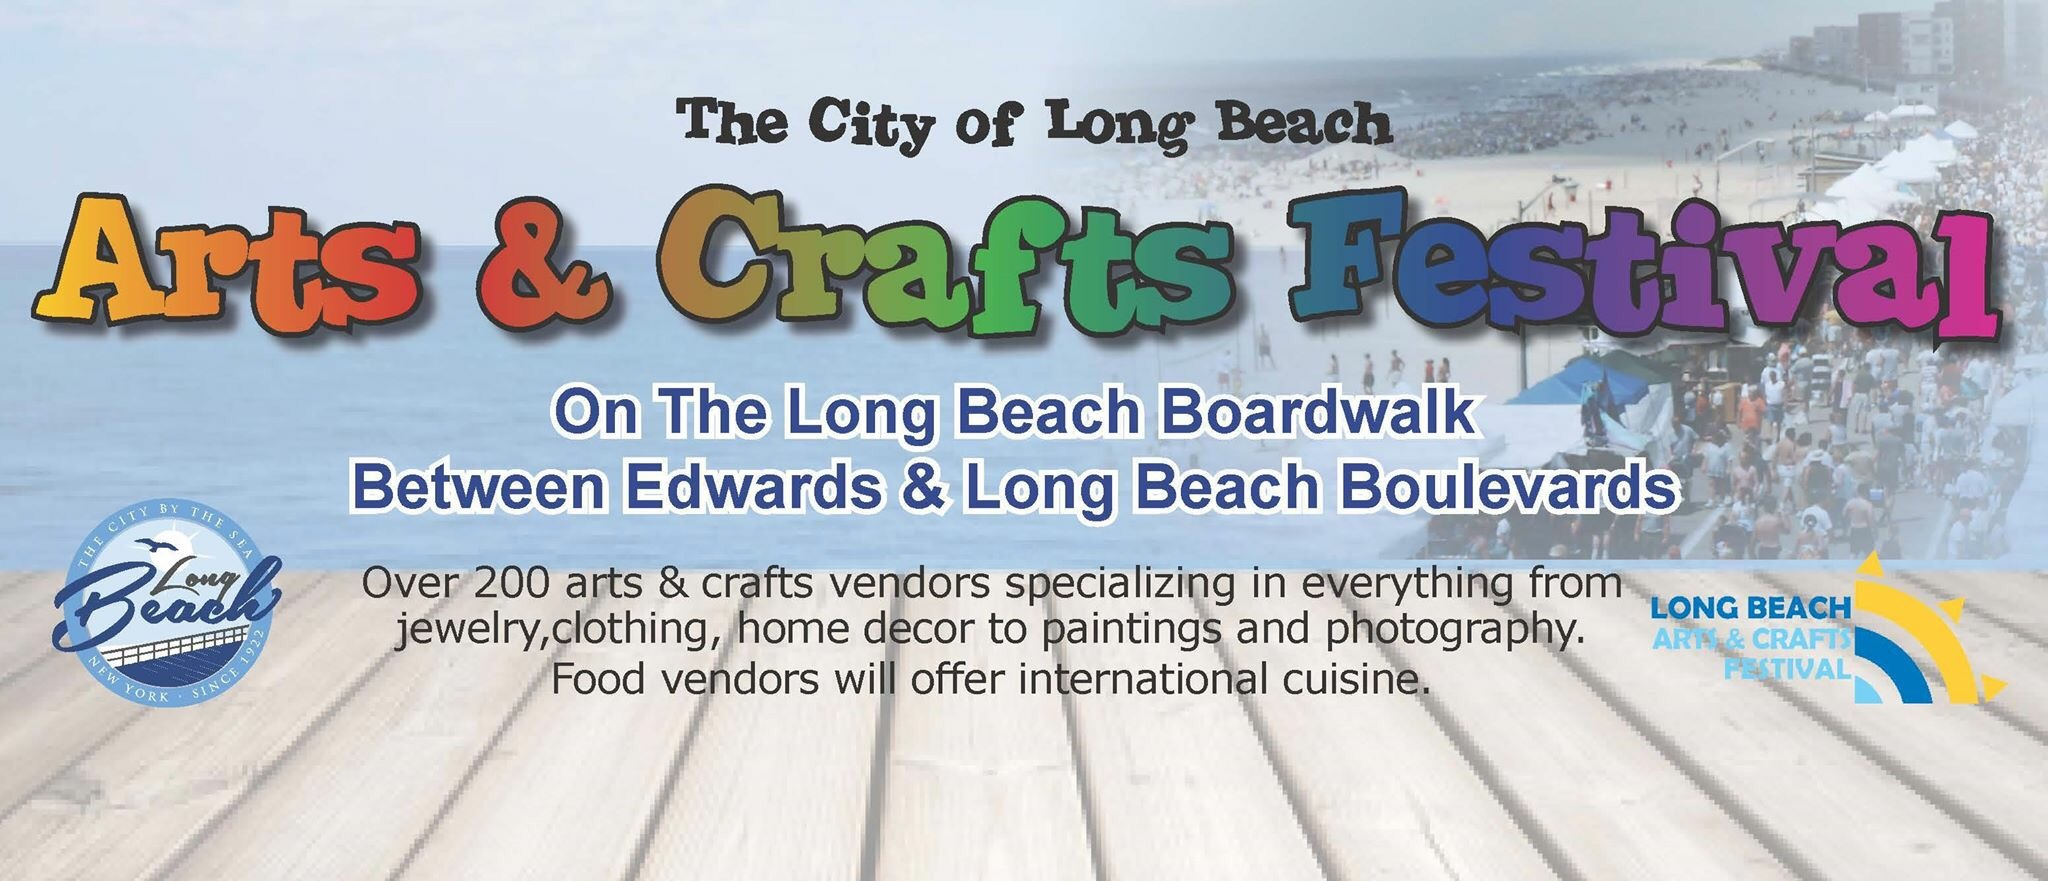 Long Beach Arts And Crafts Festival